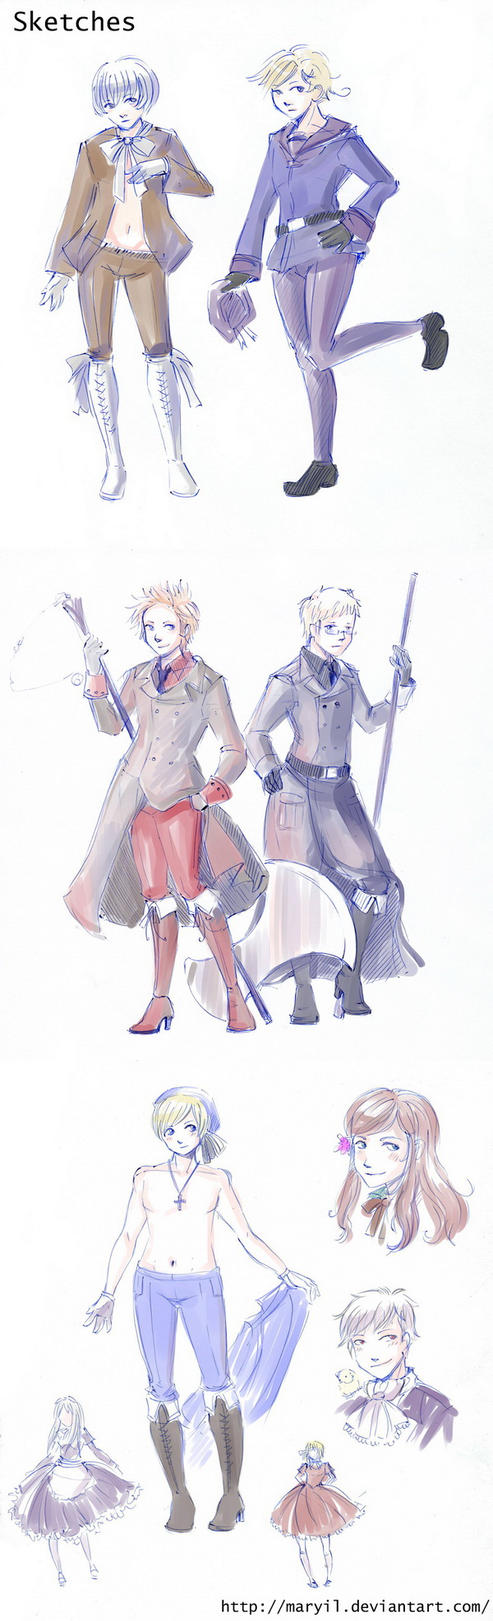 APH Sketches by MaryIL